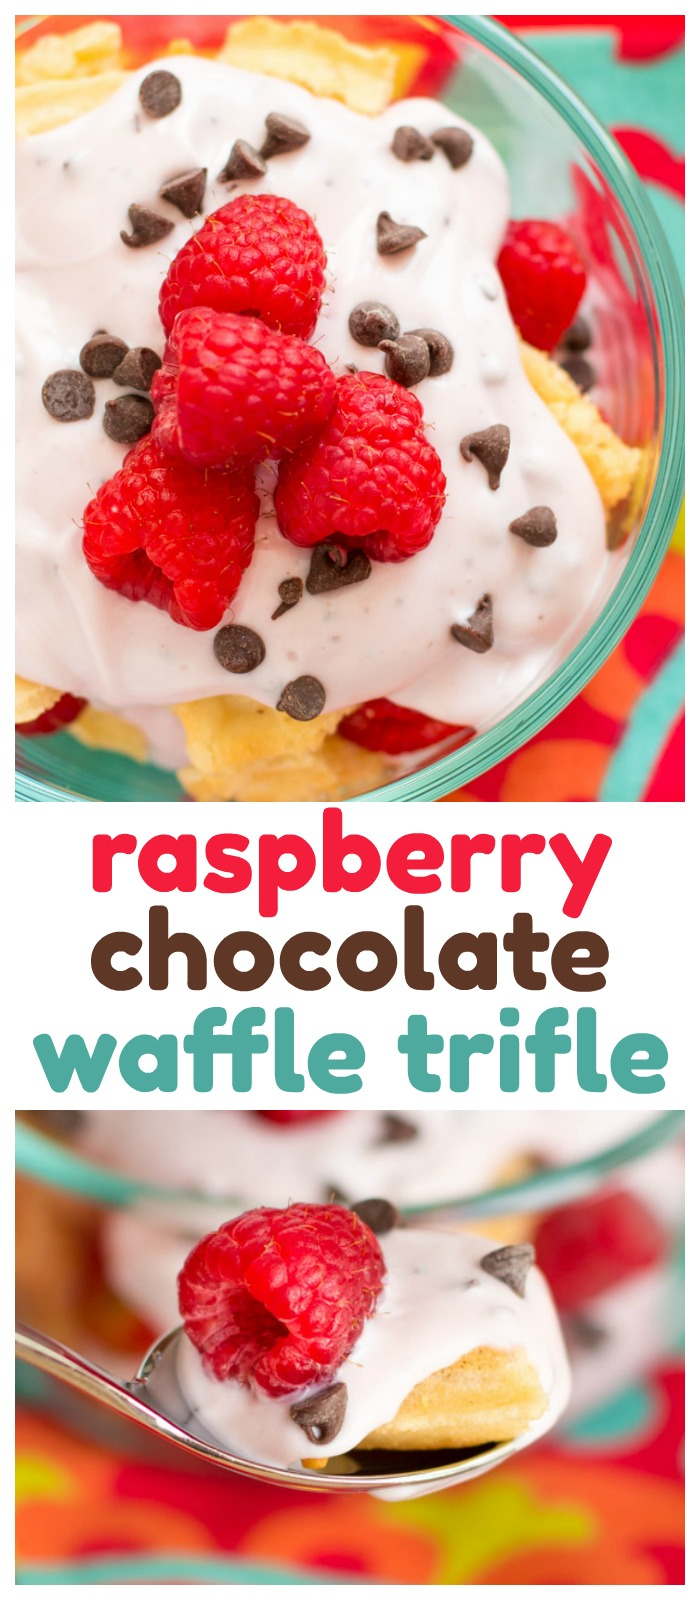 You are going to love this easy Breakfast Trifle Recipe, a tasty combination of yogurt, waffles, and fresh berriesthat will make you look forward to waking up! #waffles #trifle #yogurt #parfait #breakfast